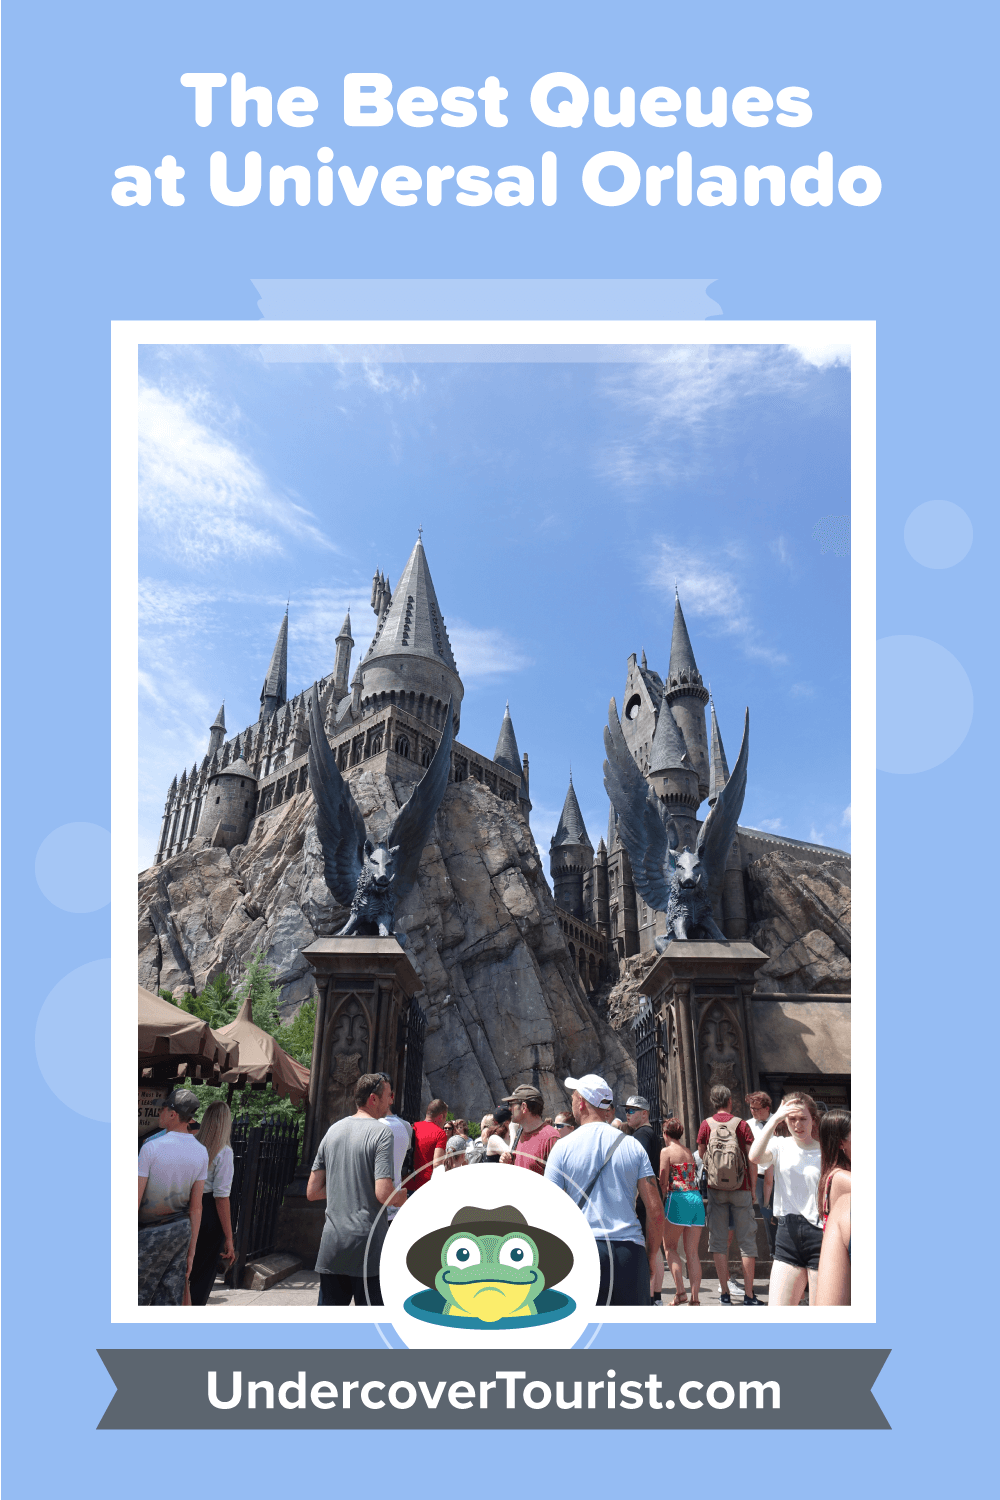 The Best Queues at Universal Orlando